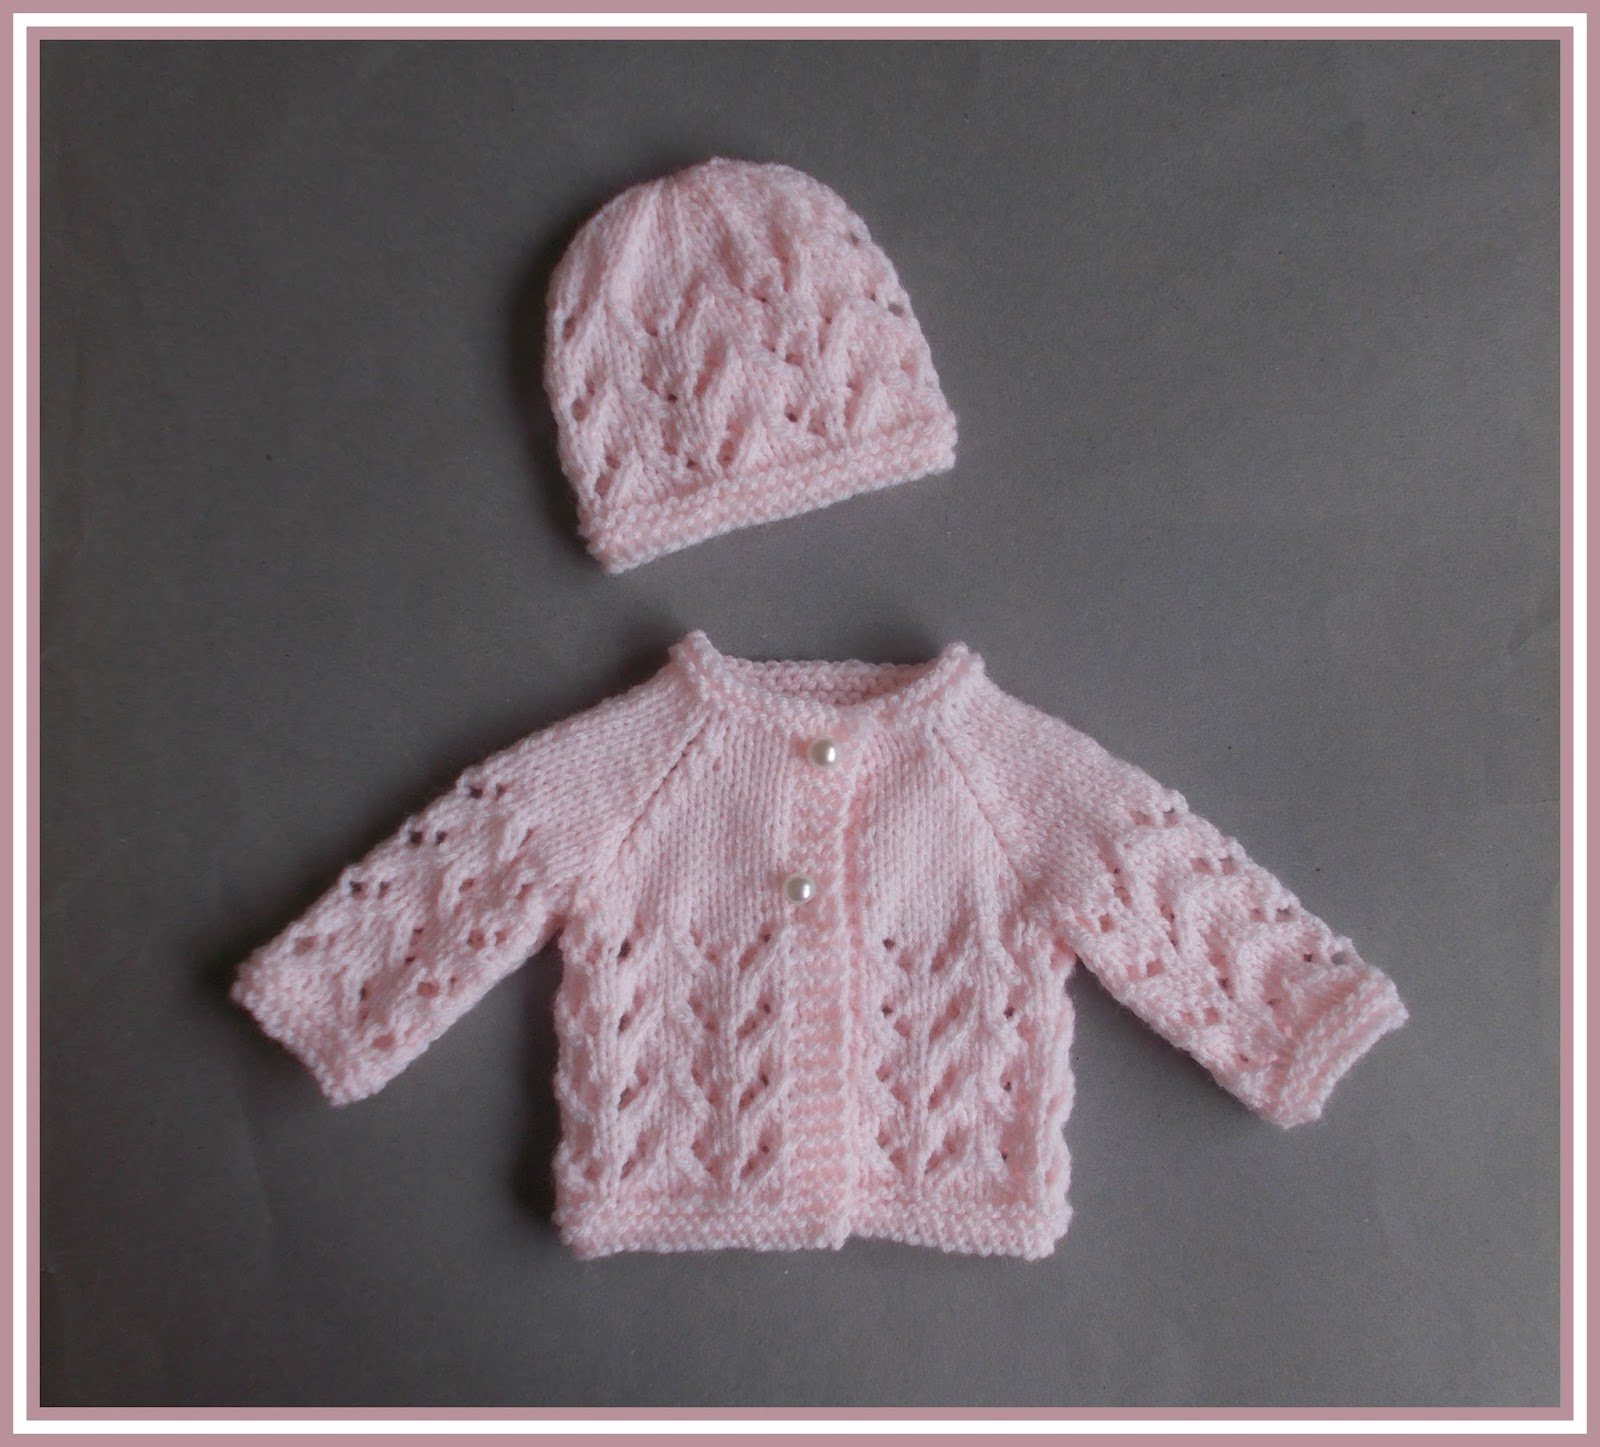 Knitting Pattern Preemie Baby Hat : mariannas lazy daisy days: Little Bibi - Preemie Baby Jacket & Hat